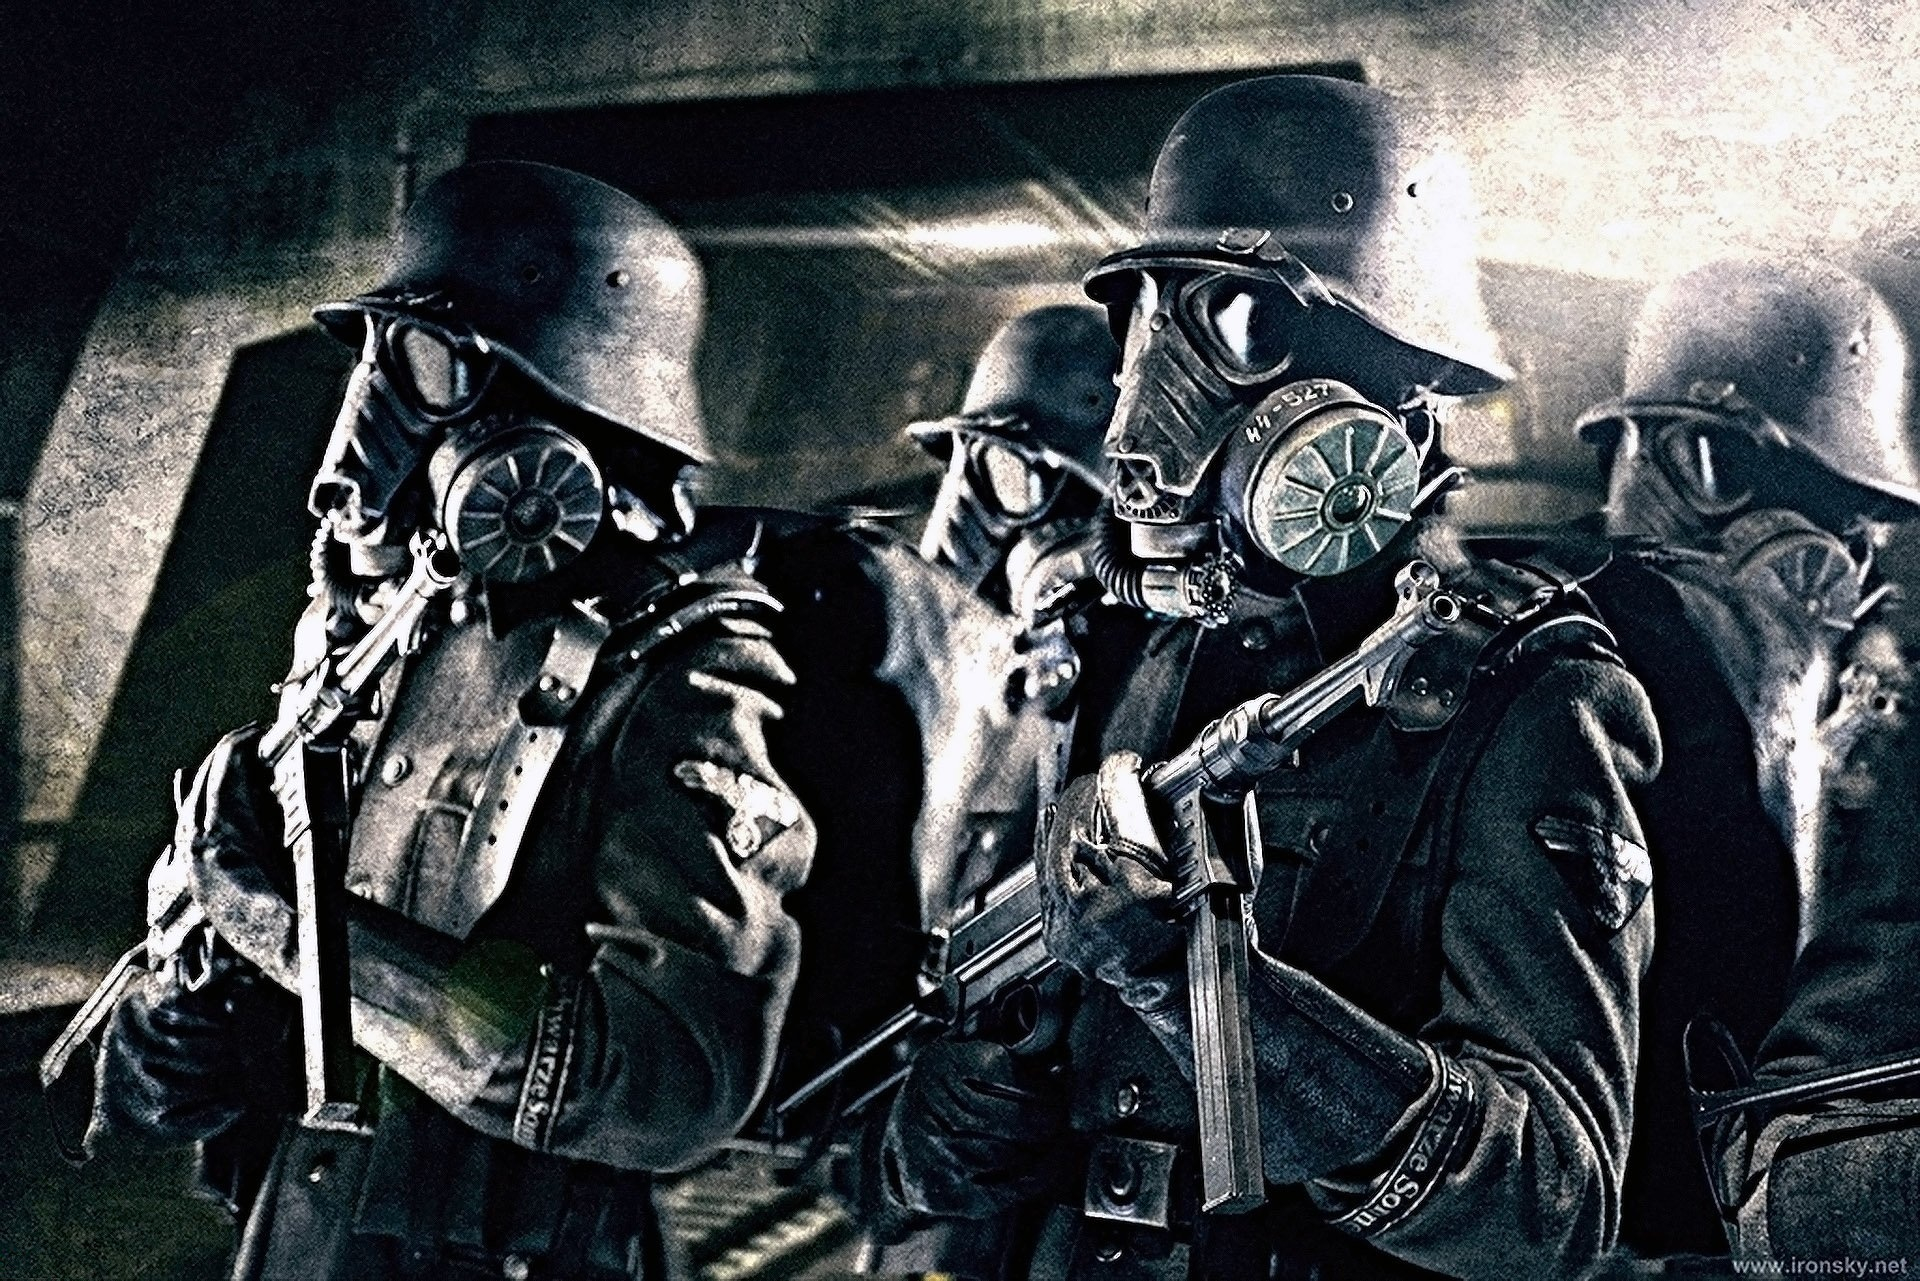 soldiers weapons gas masks HD Wallpaper